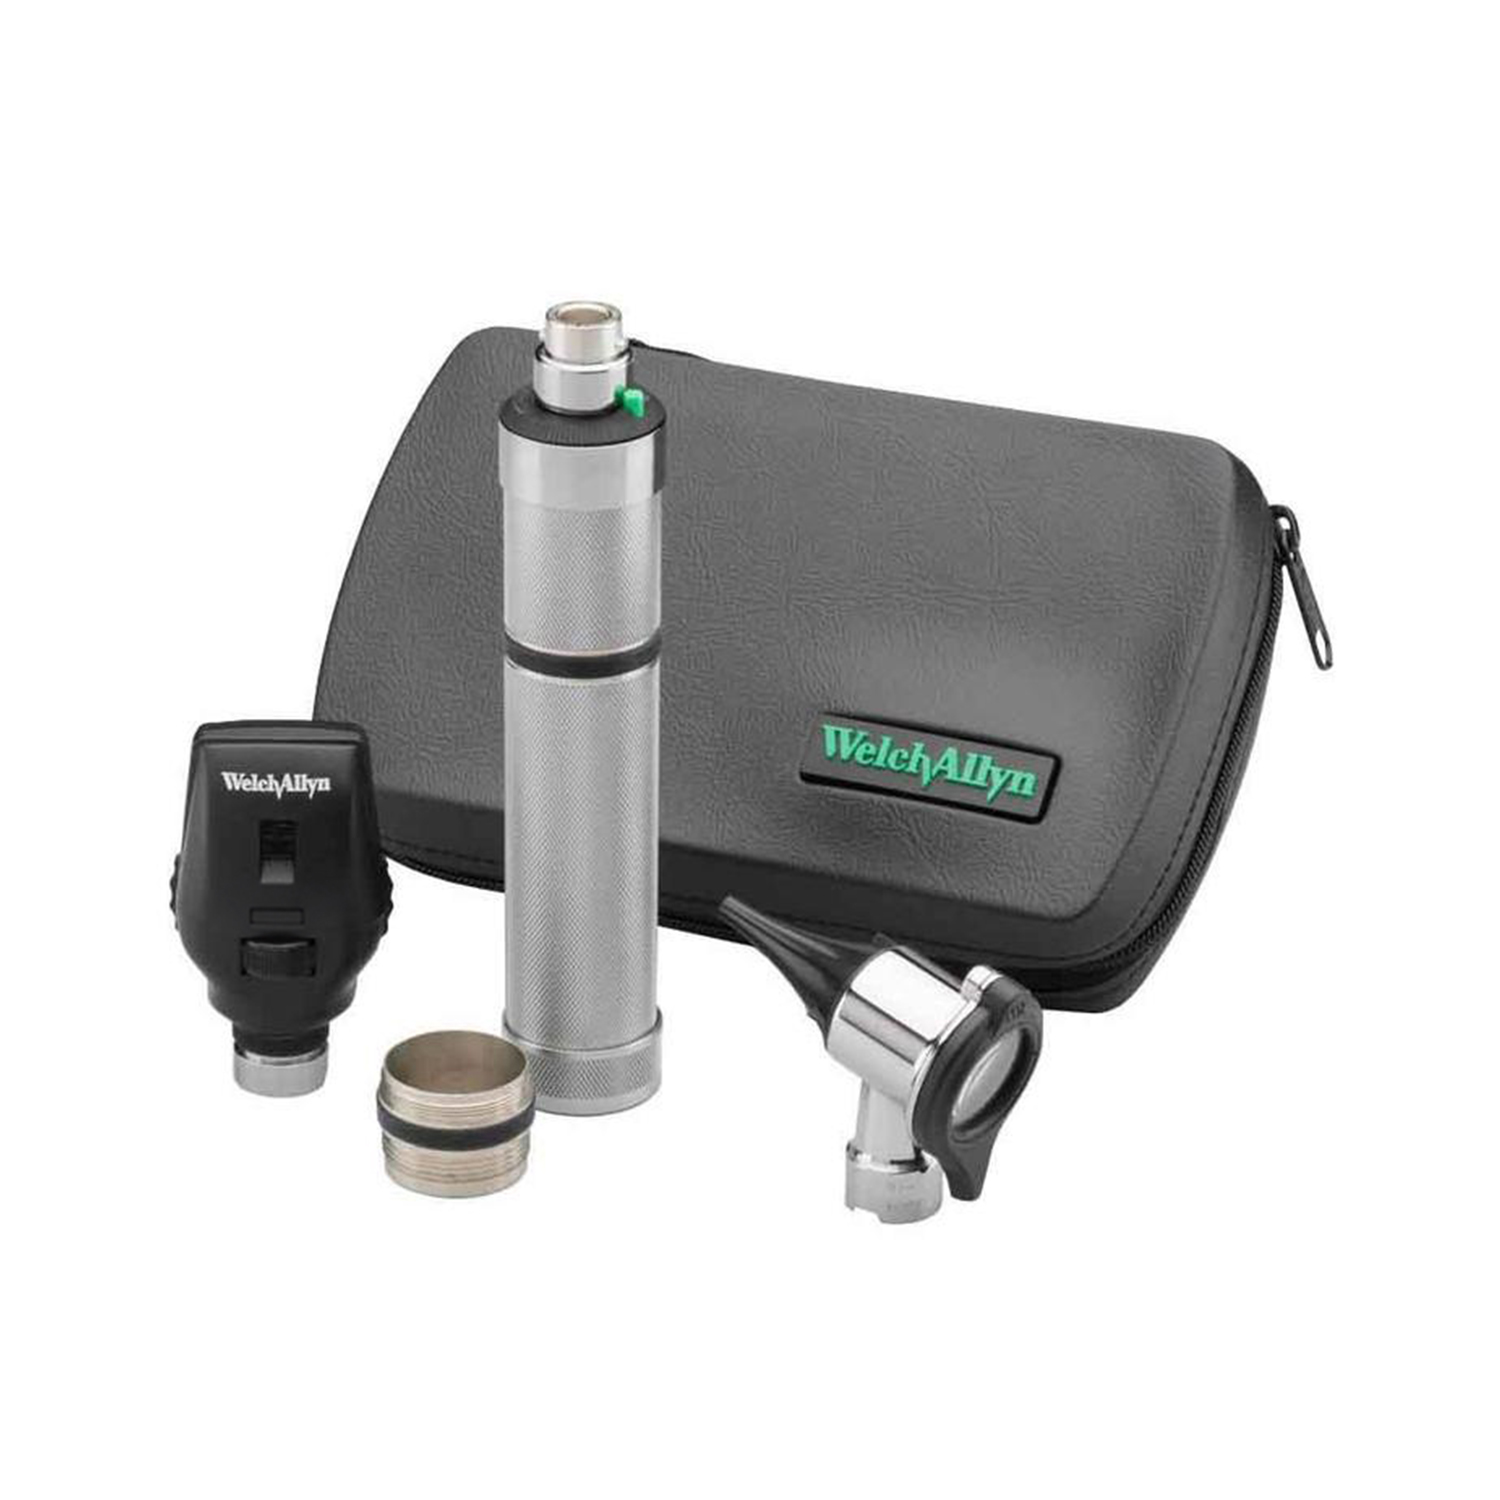 Standard Ophthalmoscope, Pneumatic Otoscope, Convertible Nickel Handle, Hard Case